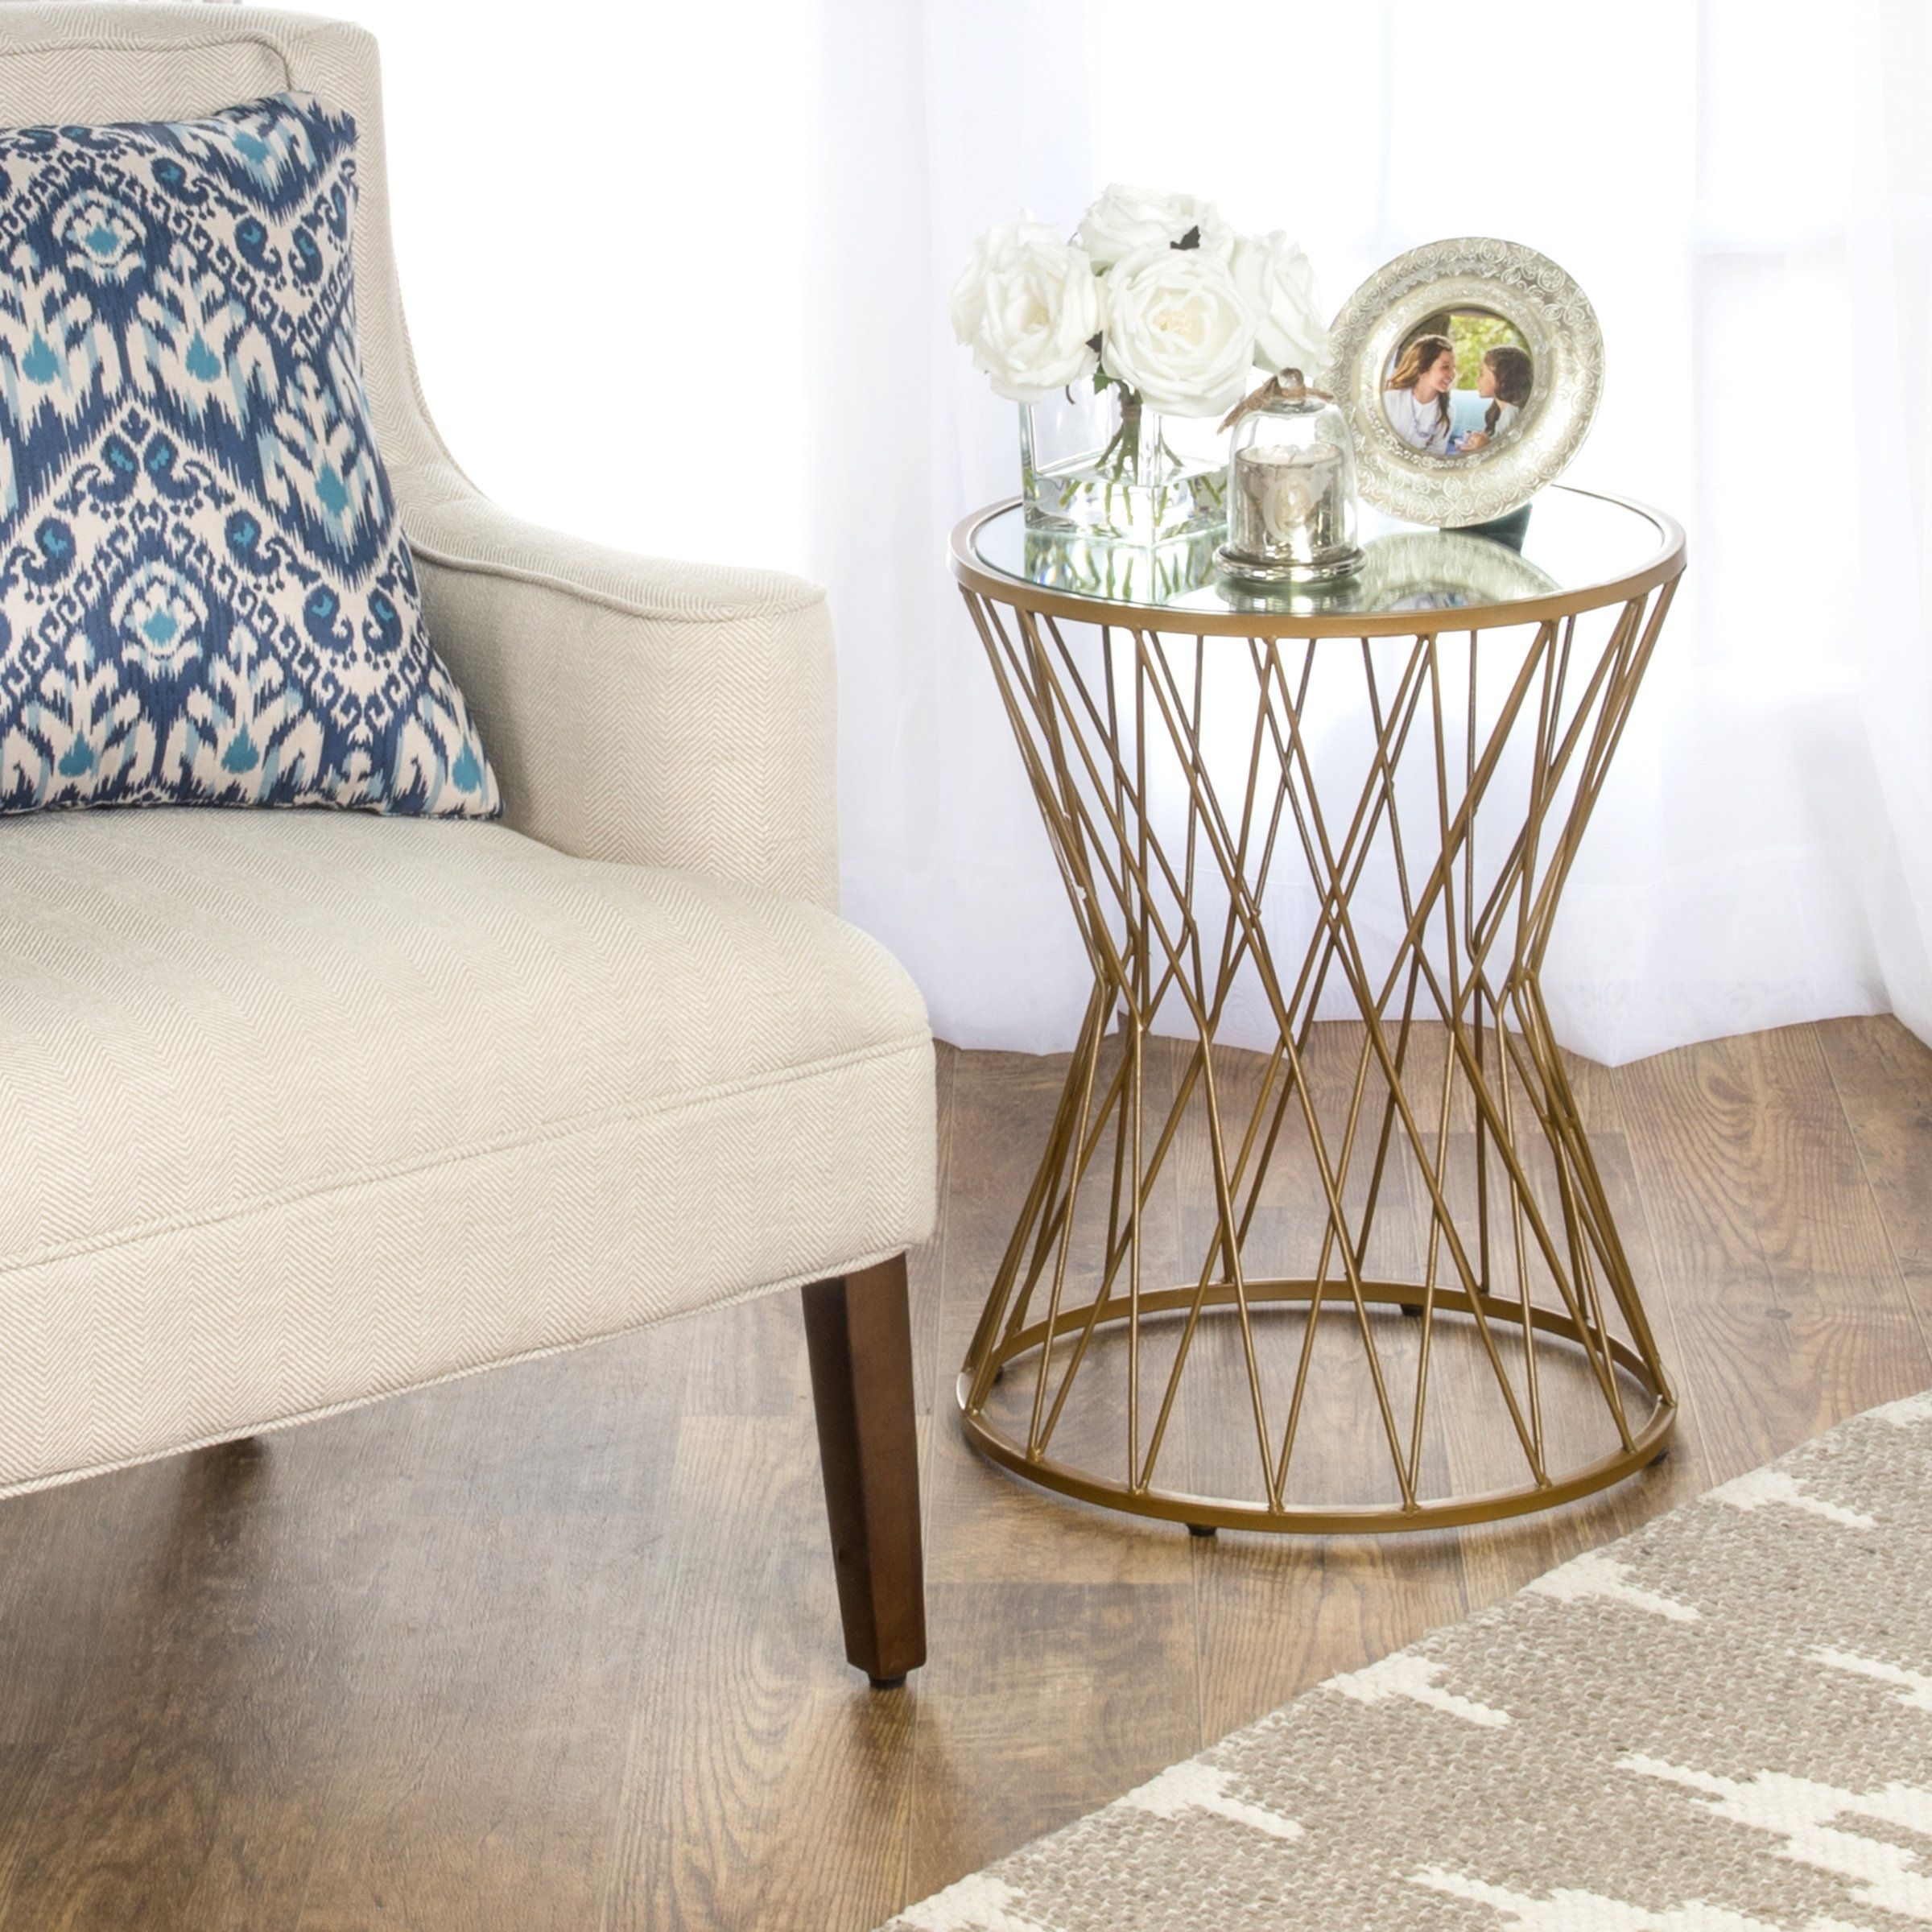 Online Shopping Bedding Furniture Electronics Jewelry Clothing More Metal Accent Table Gold Accent Table Accent Table